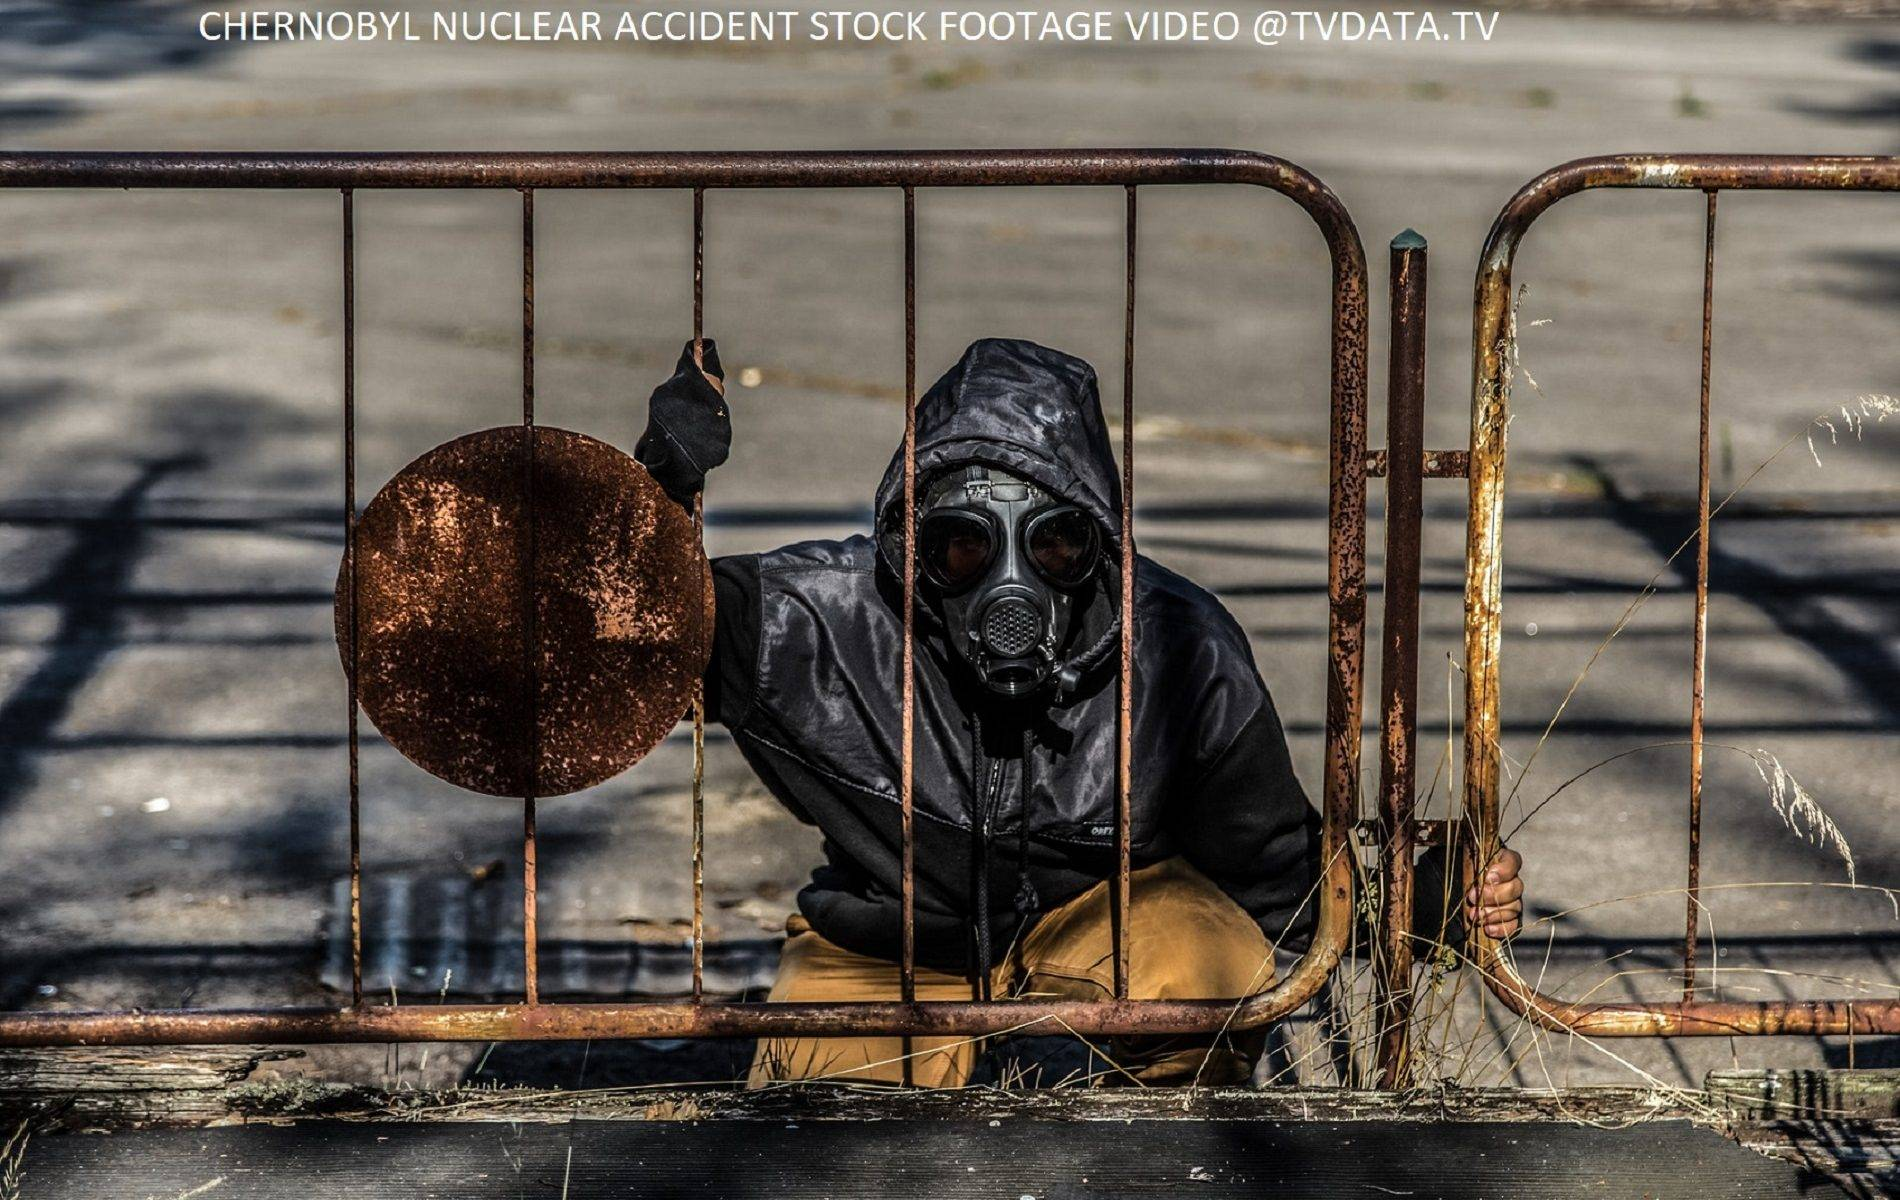 CHERNOBYL NUCLEAR ACCIDENT STOCK FOOTAGE VIDEO